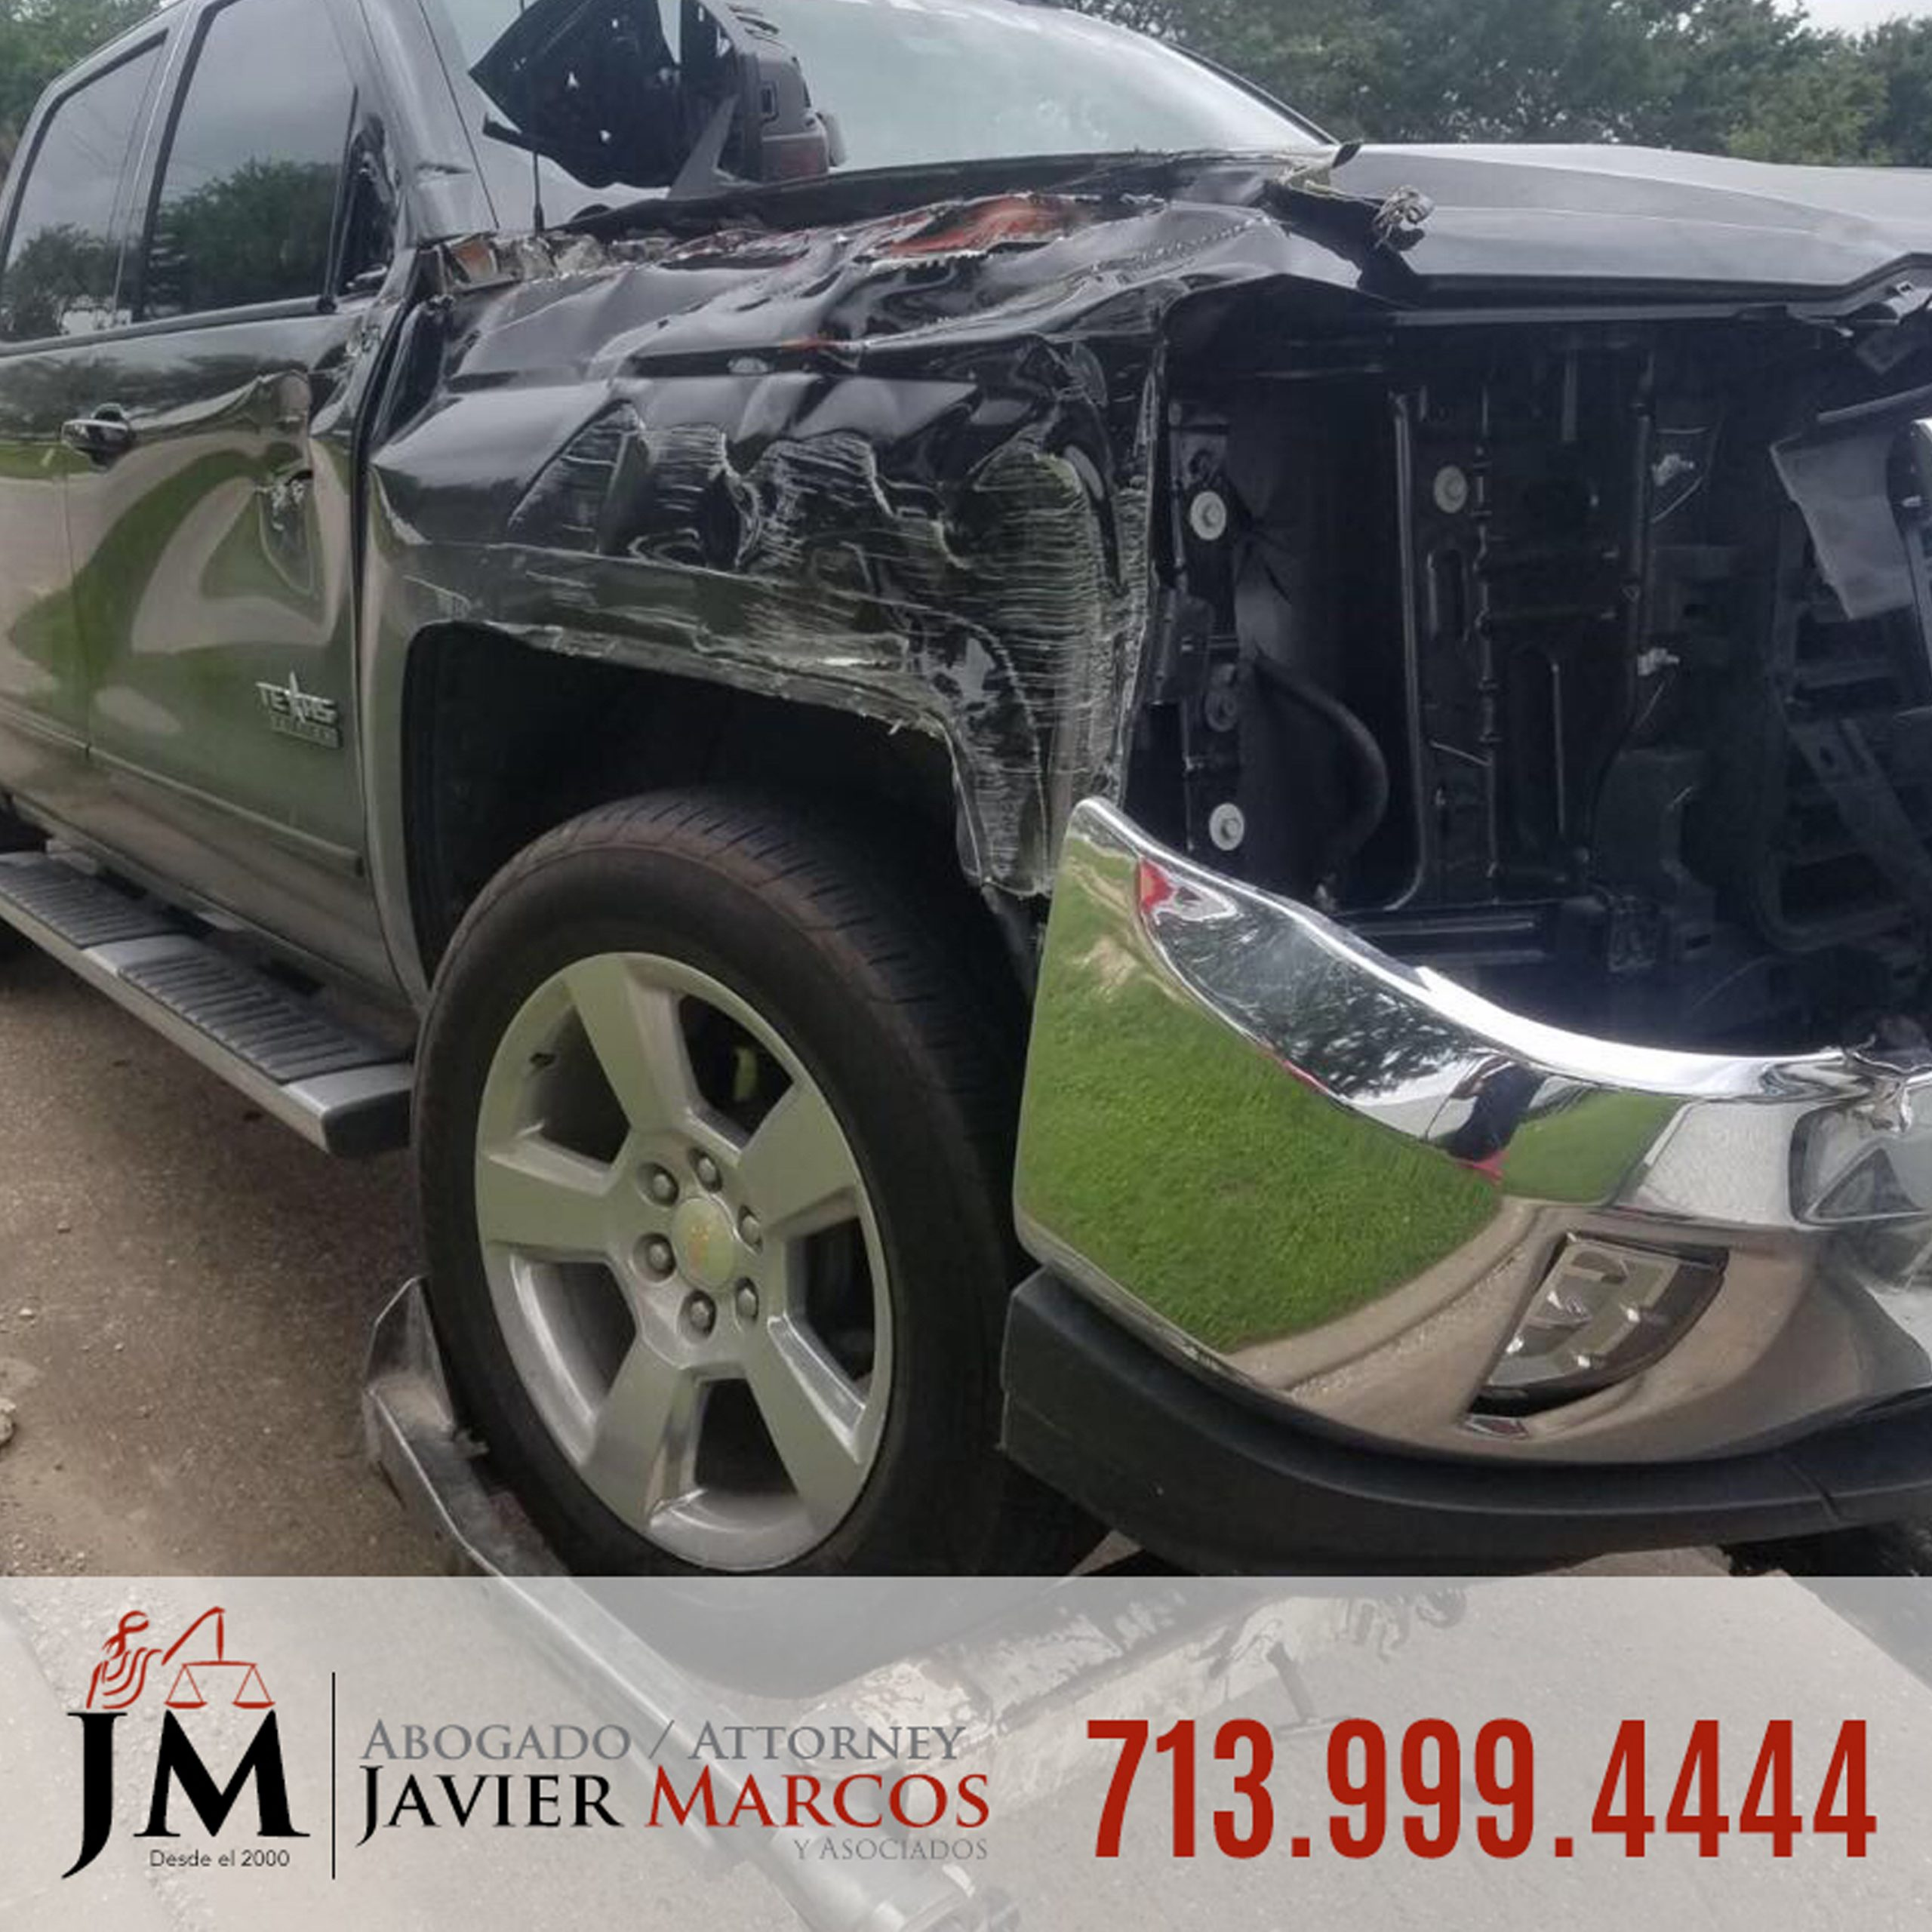 What can a Auto Accident Attorney do for you | Attorney Javier Marcos